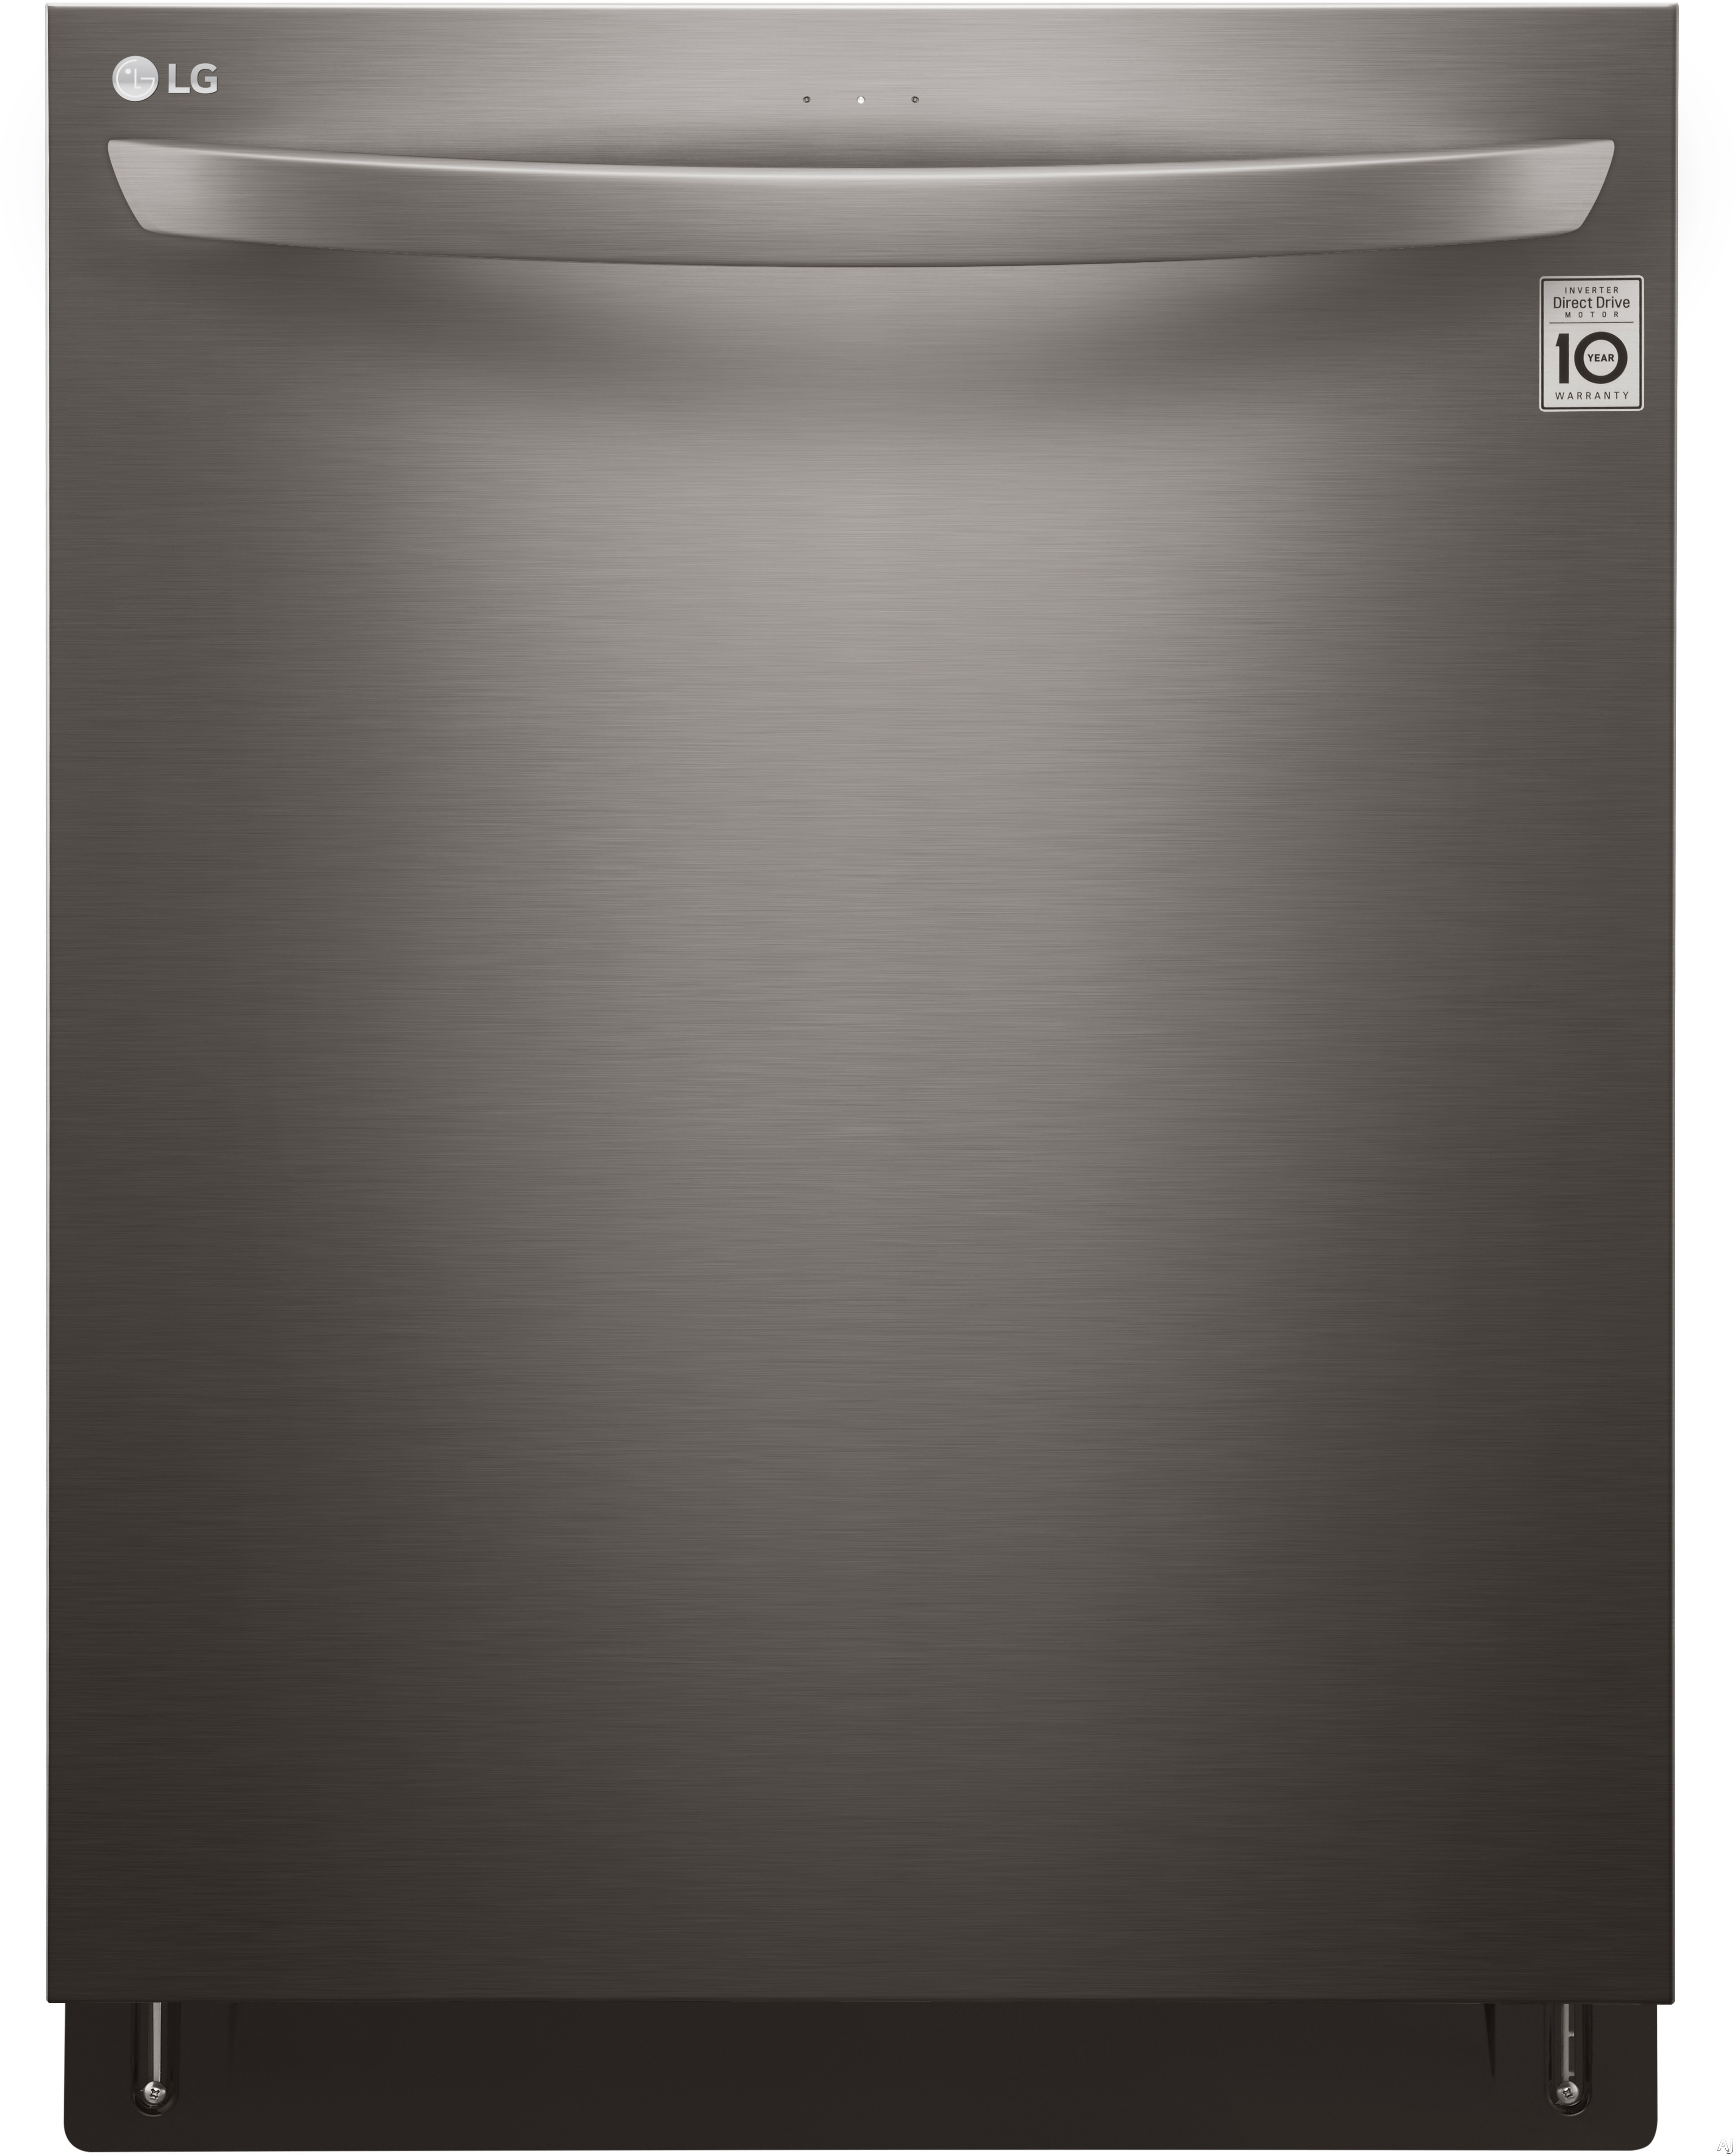 LG LDT5665BD 24 Inch Fully Integrated QuadWash™ Dishwasher with SmartThinQ® Technology, NeveRust™ Stainless Steel Tub, EasyRack™ System, 15 Place Setting Capacity, 9 Wash Cycles, 46 dBA LoDecibel™ Operation and ENERGY STAR®: Black Stainless Ste